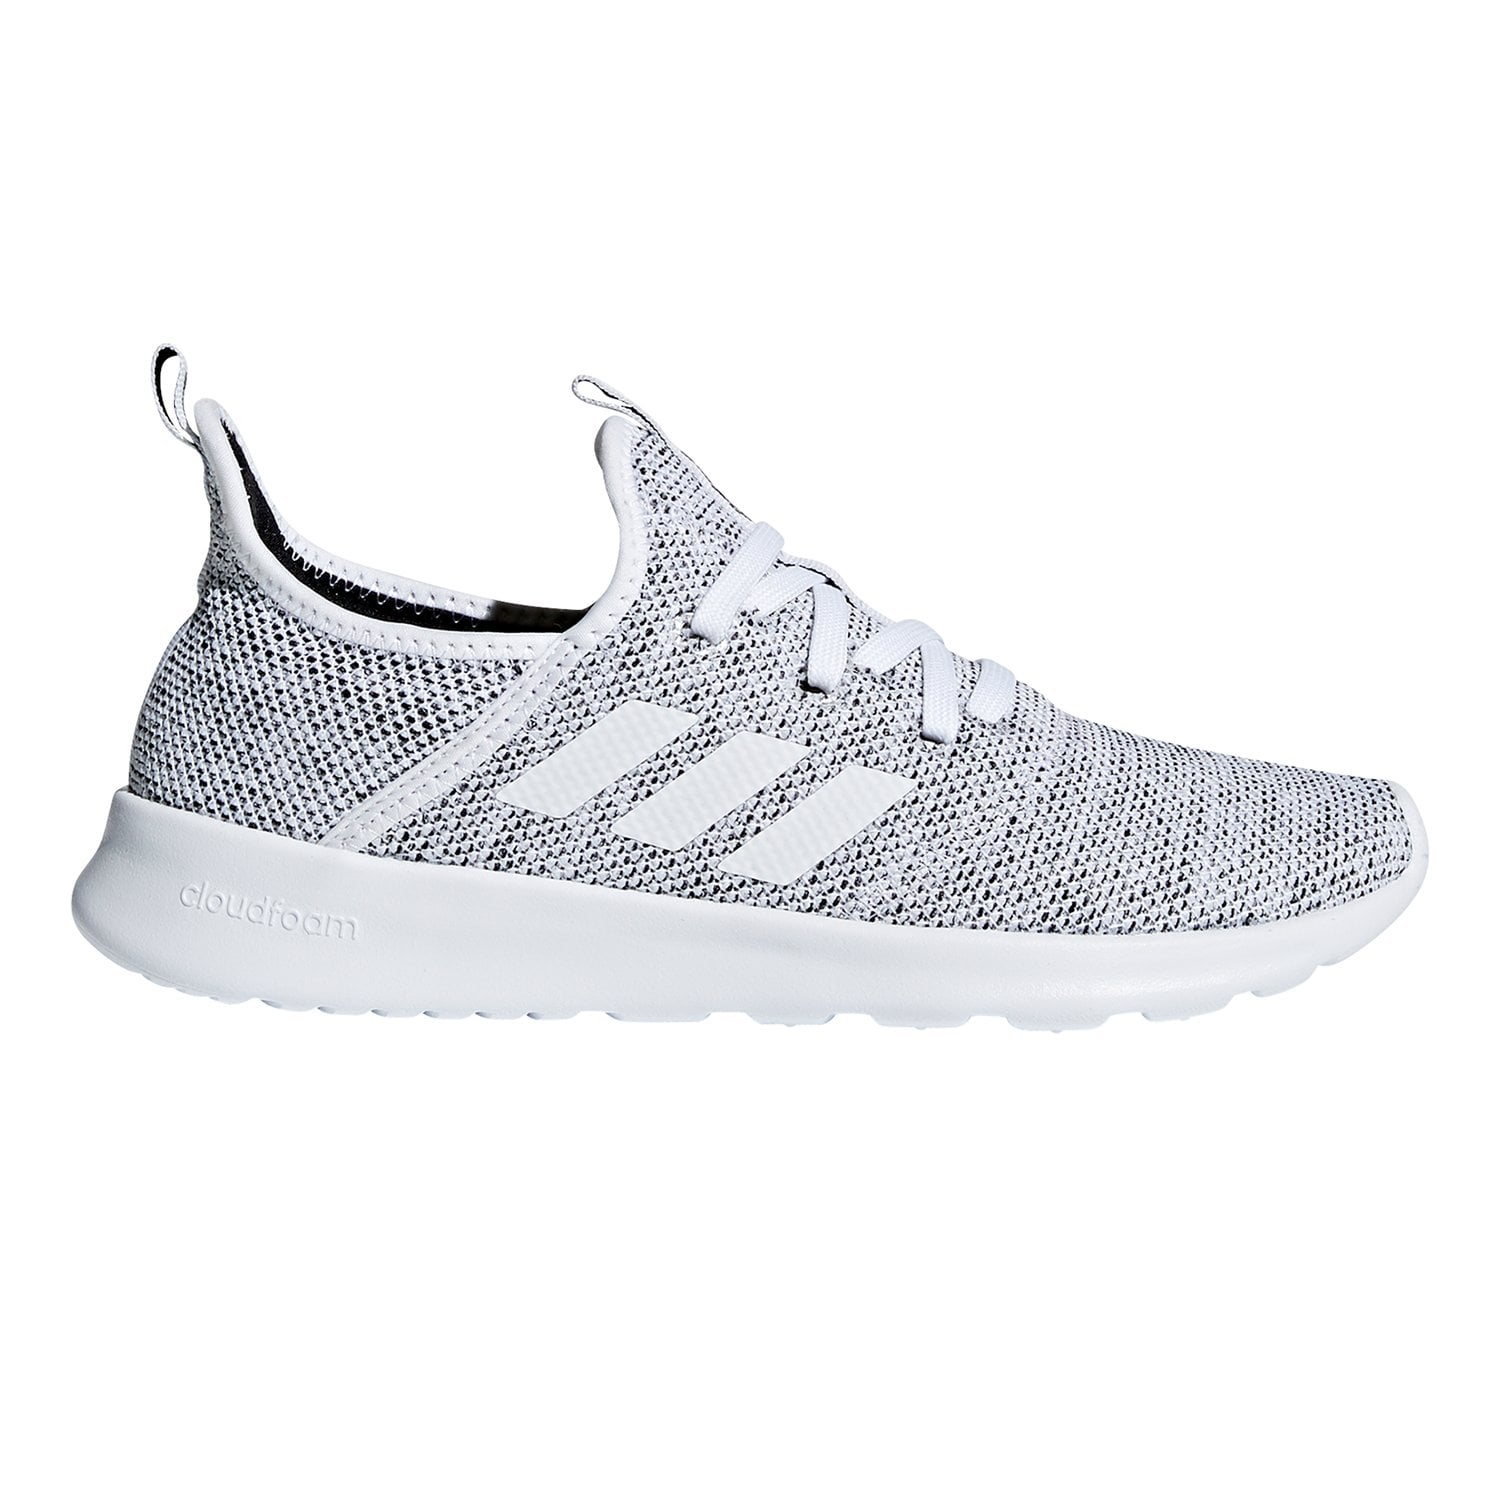 204 Best adidas shoes images | Adidas women, Adidas shoes